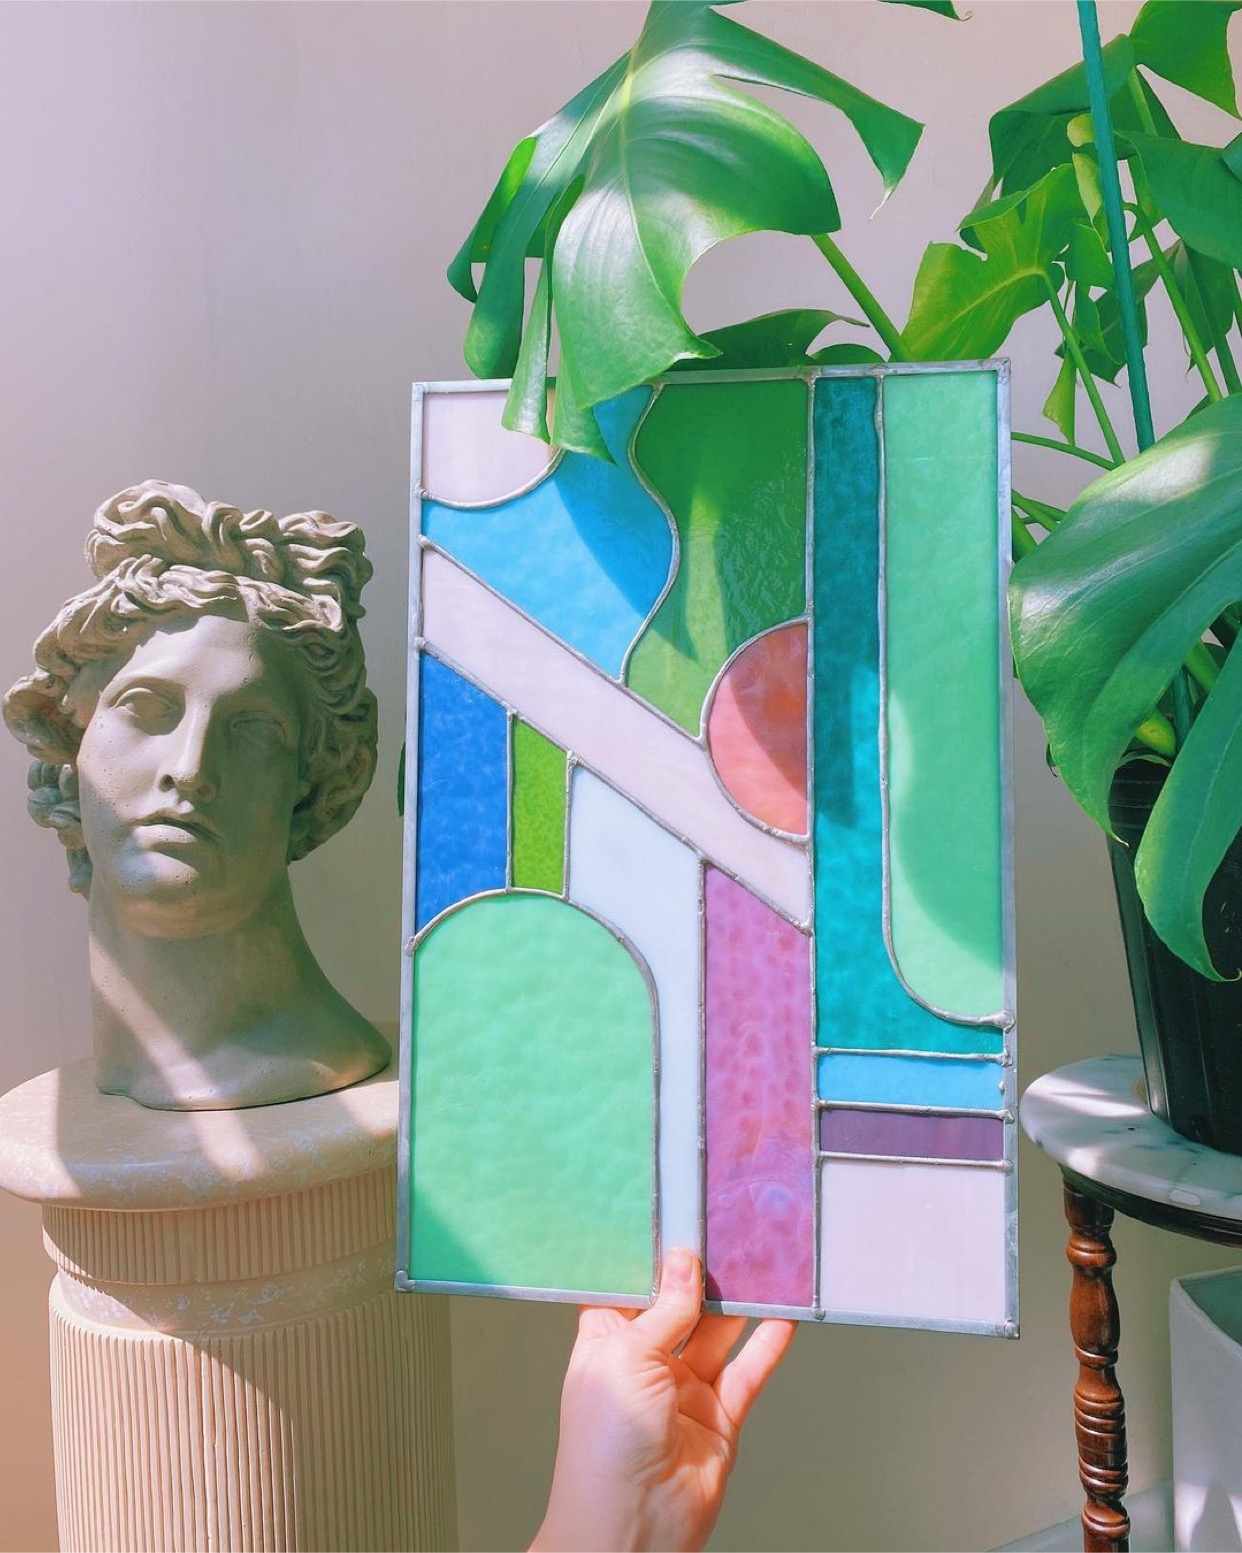 Large stained glass piece. glass is beach colors in mint green, lavender, and pink